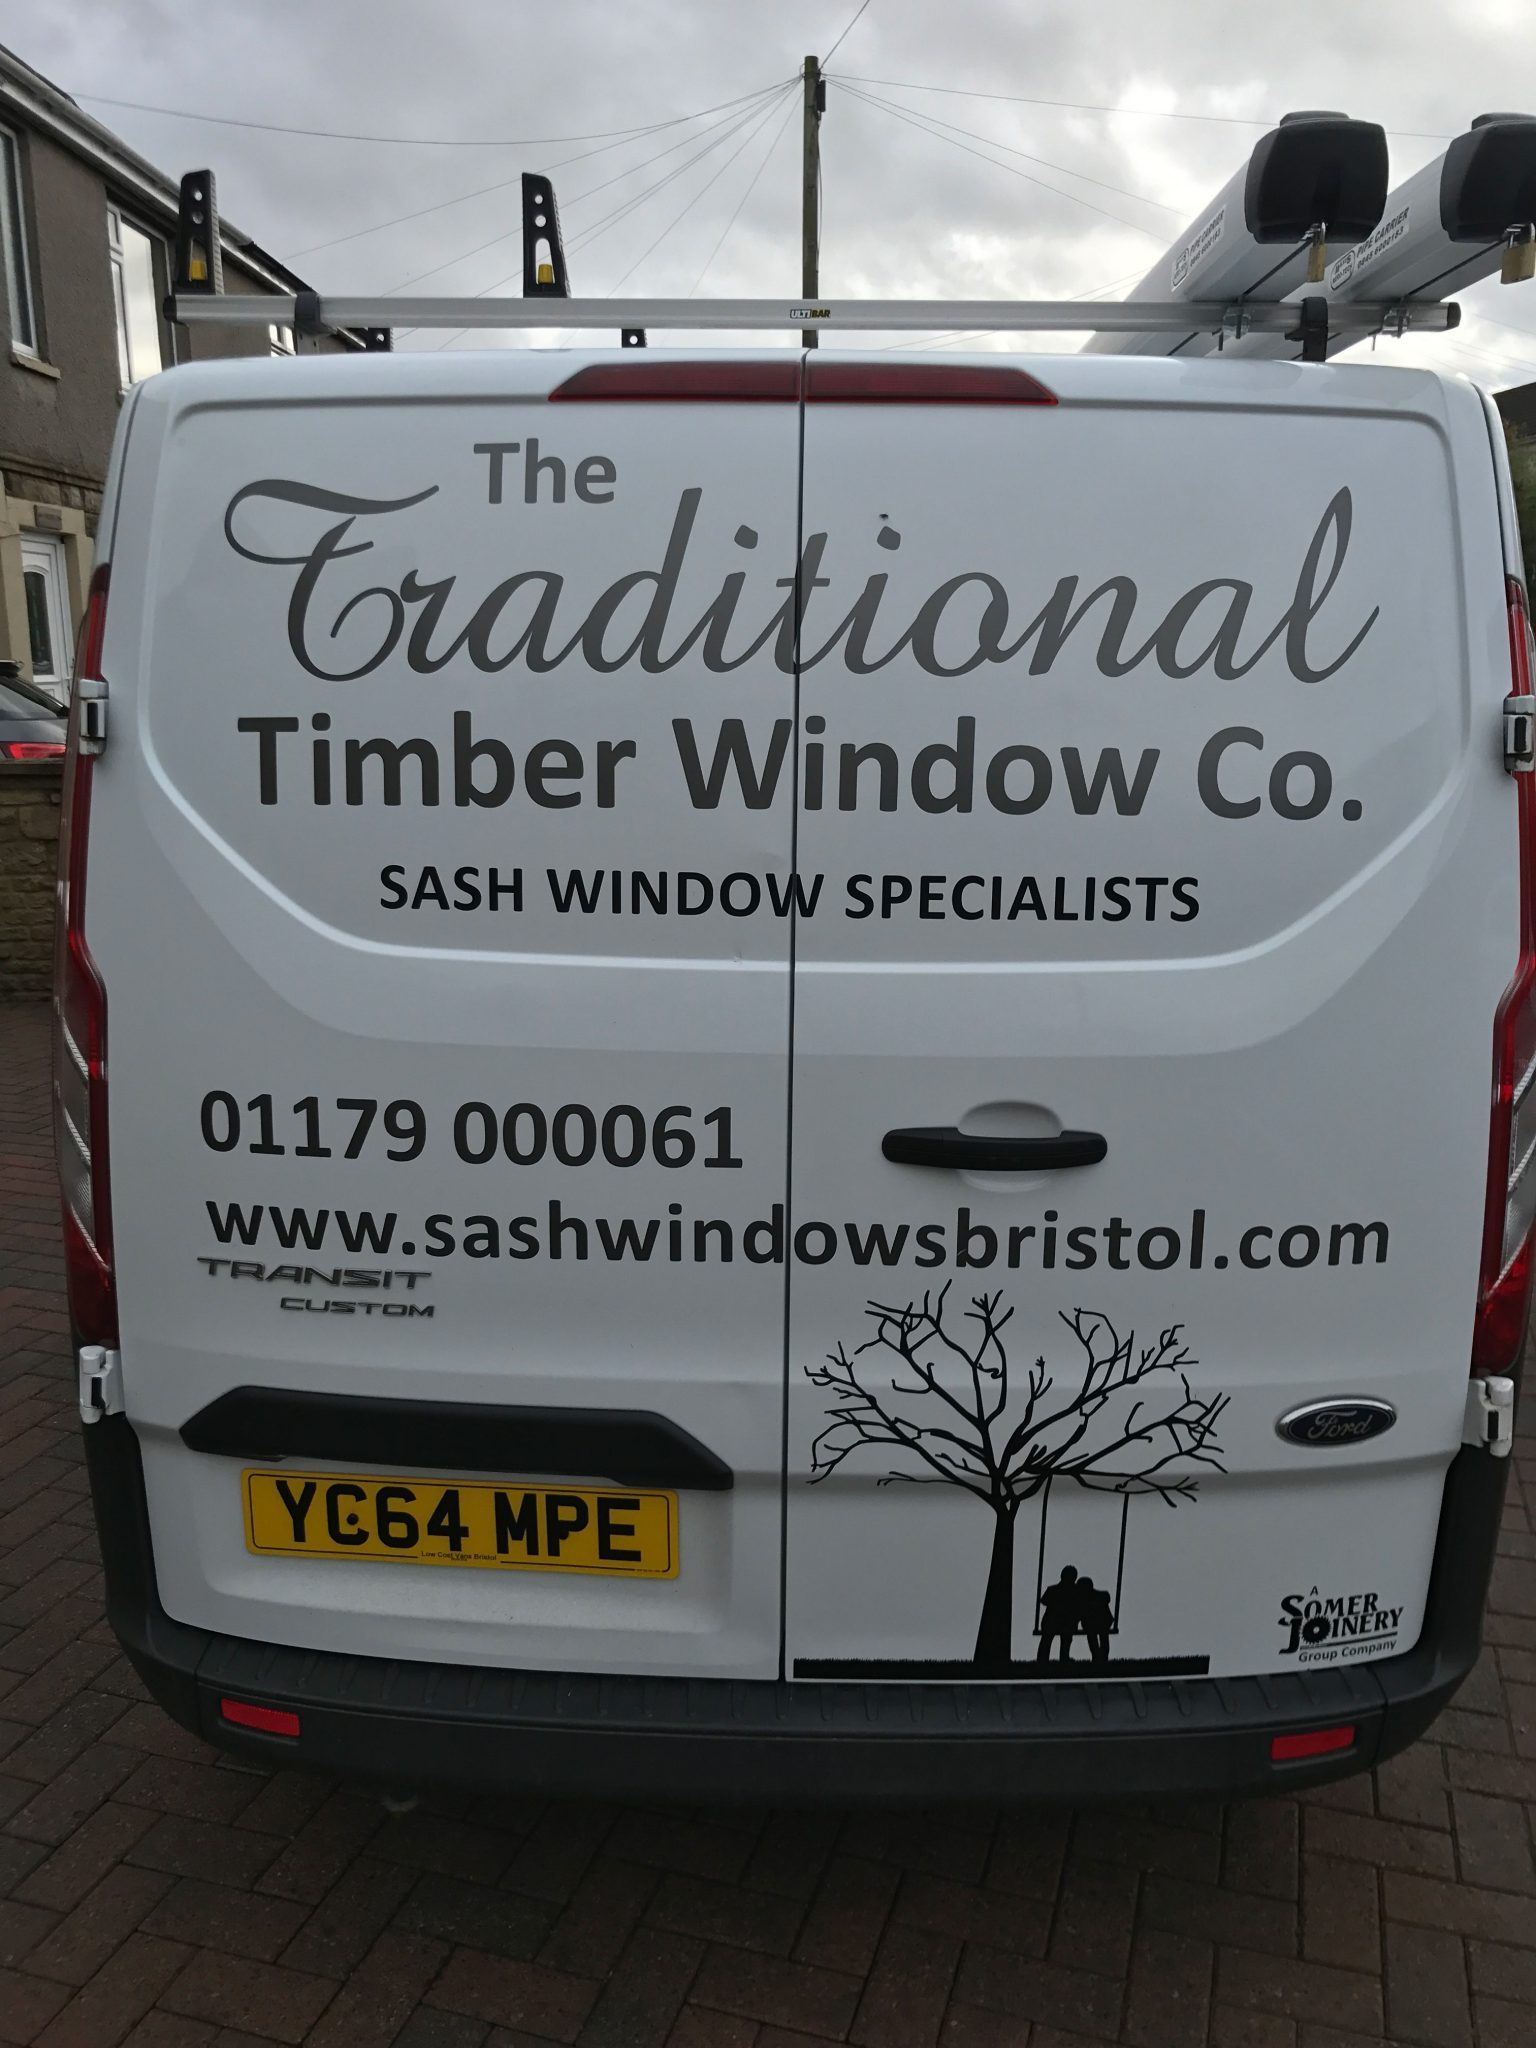 image of a traditional timber window company van